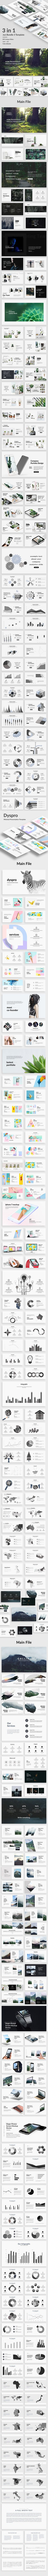 Jun Bundle 3 - Minimal Powerpoint Template - Creative PowerPoint Templates Download here: https://graphicriver.net/item/jun-bundle-3-minimal-powerpoint-template/20076817?ref=classicdesignp